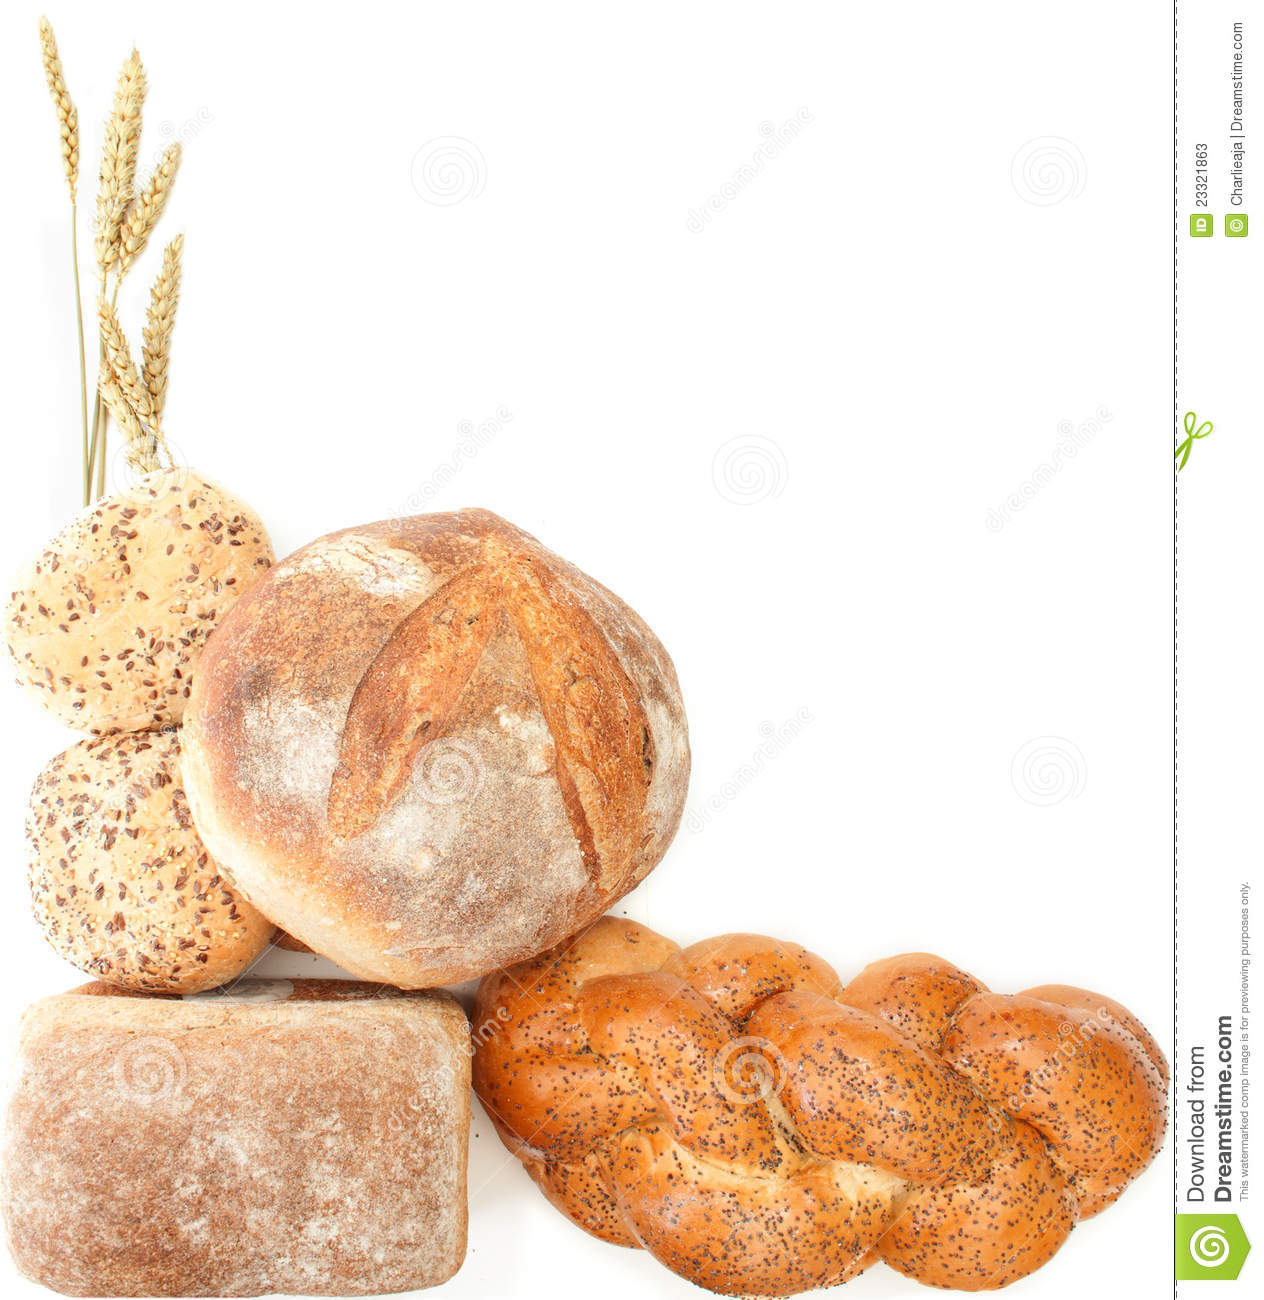 Collection of bread loaves and baguettes with room for text.